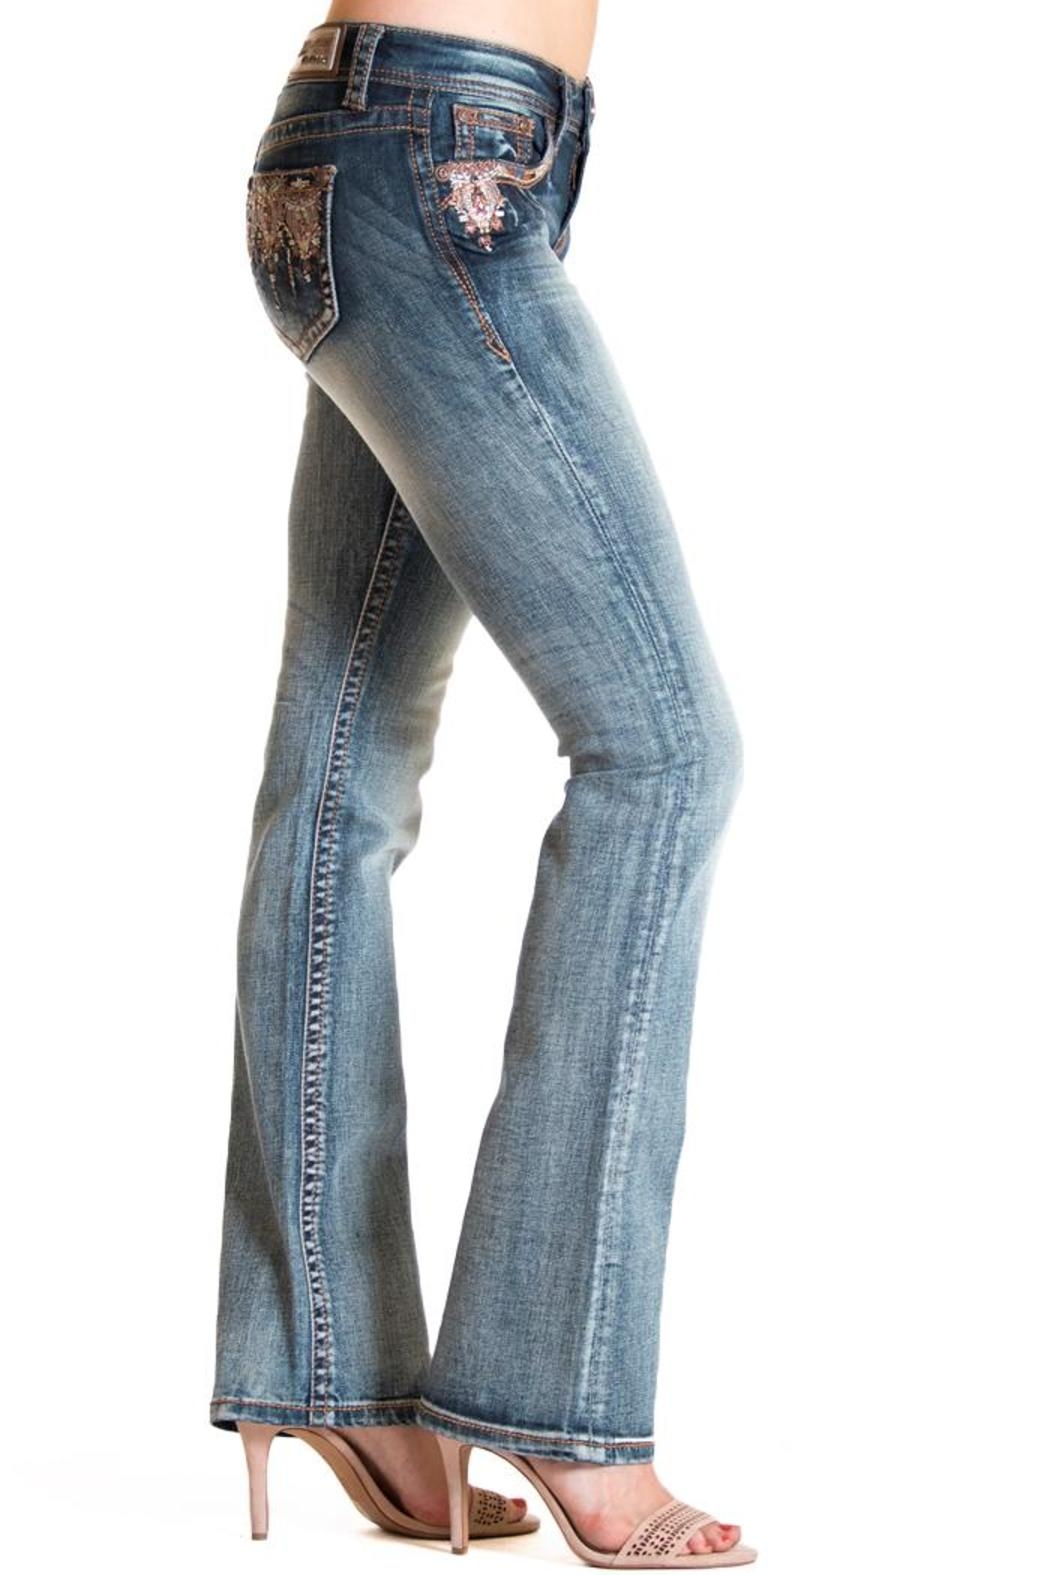 Grace in L.A. Boho Detail-Pocket Bootcut - Back Cropped Image